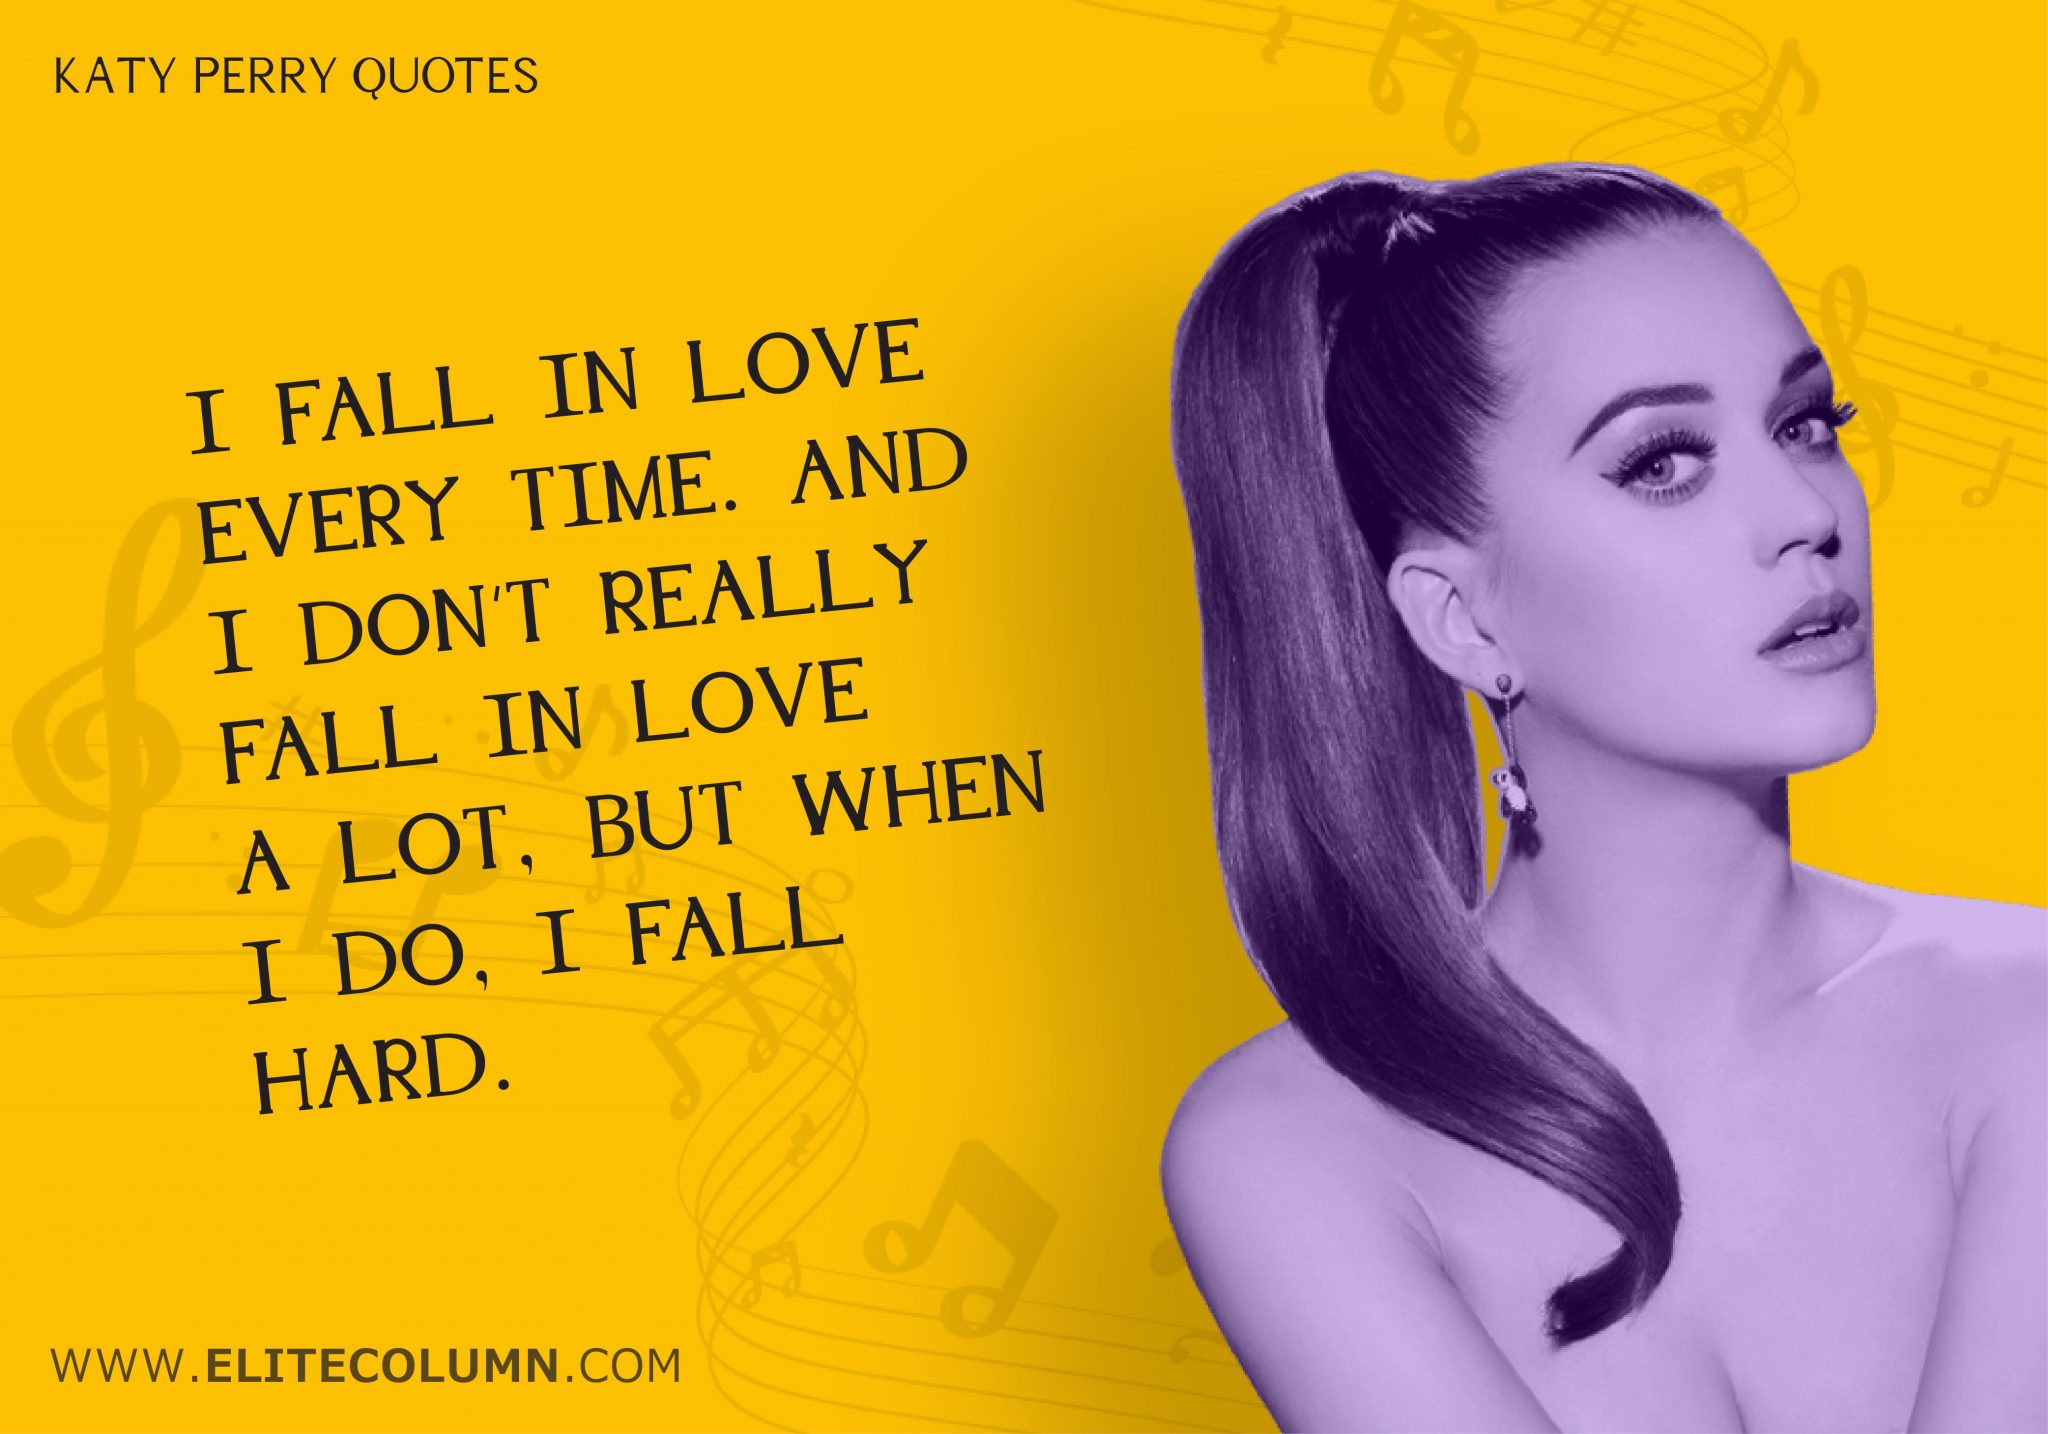 Katy Perry Quotes (5)